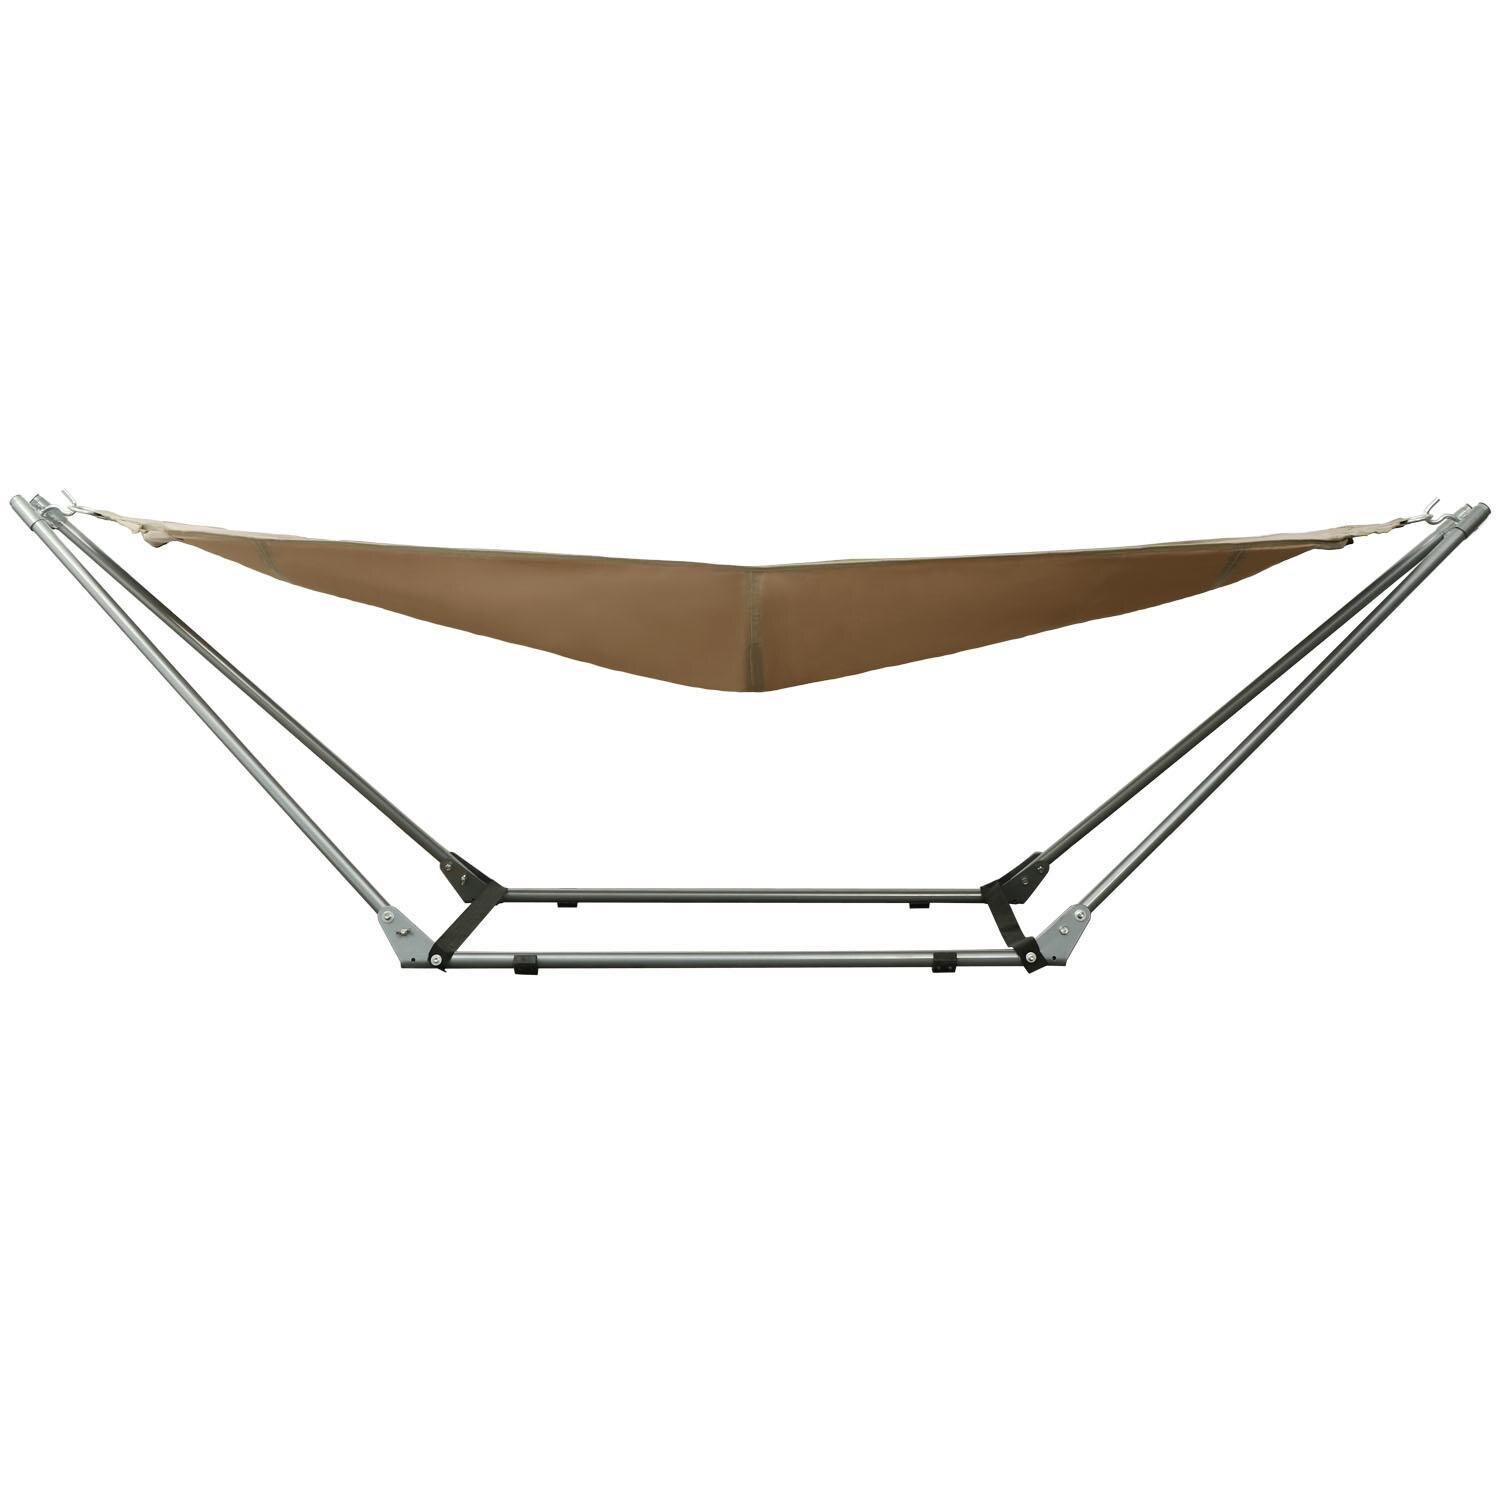 Foldable Adjustable Hammock Garden Beach With Carrying Bag 1